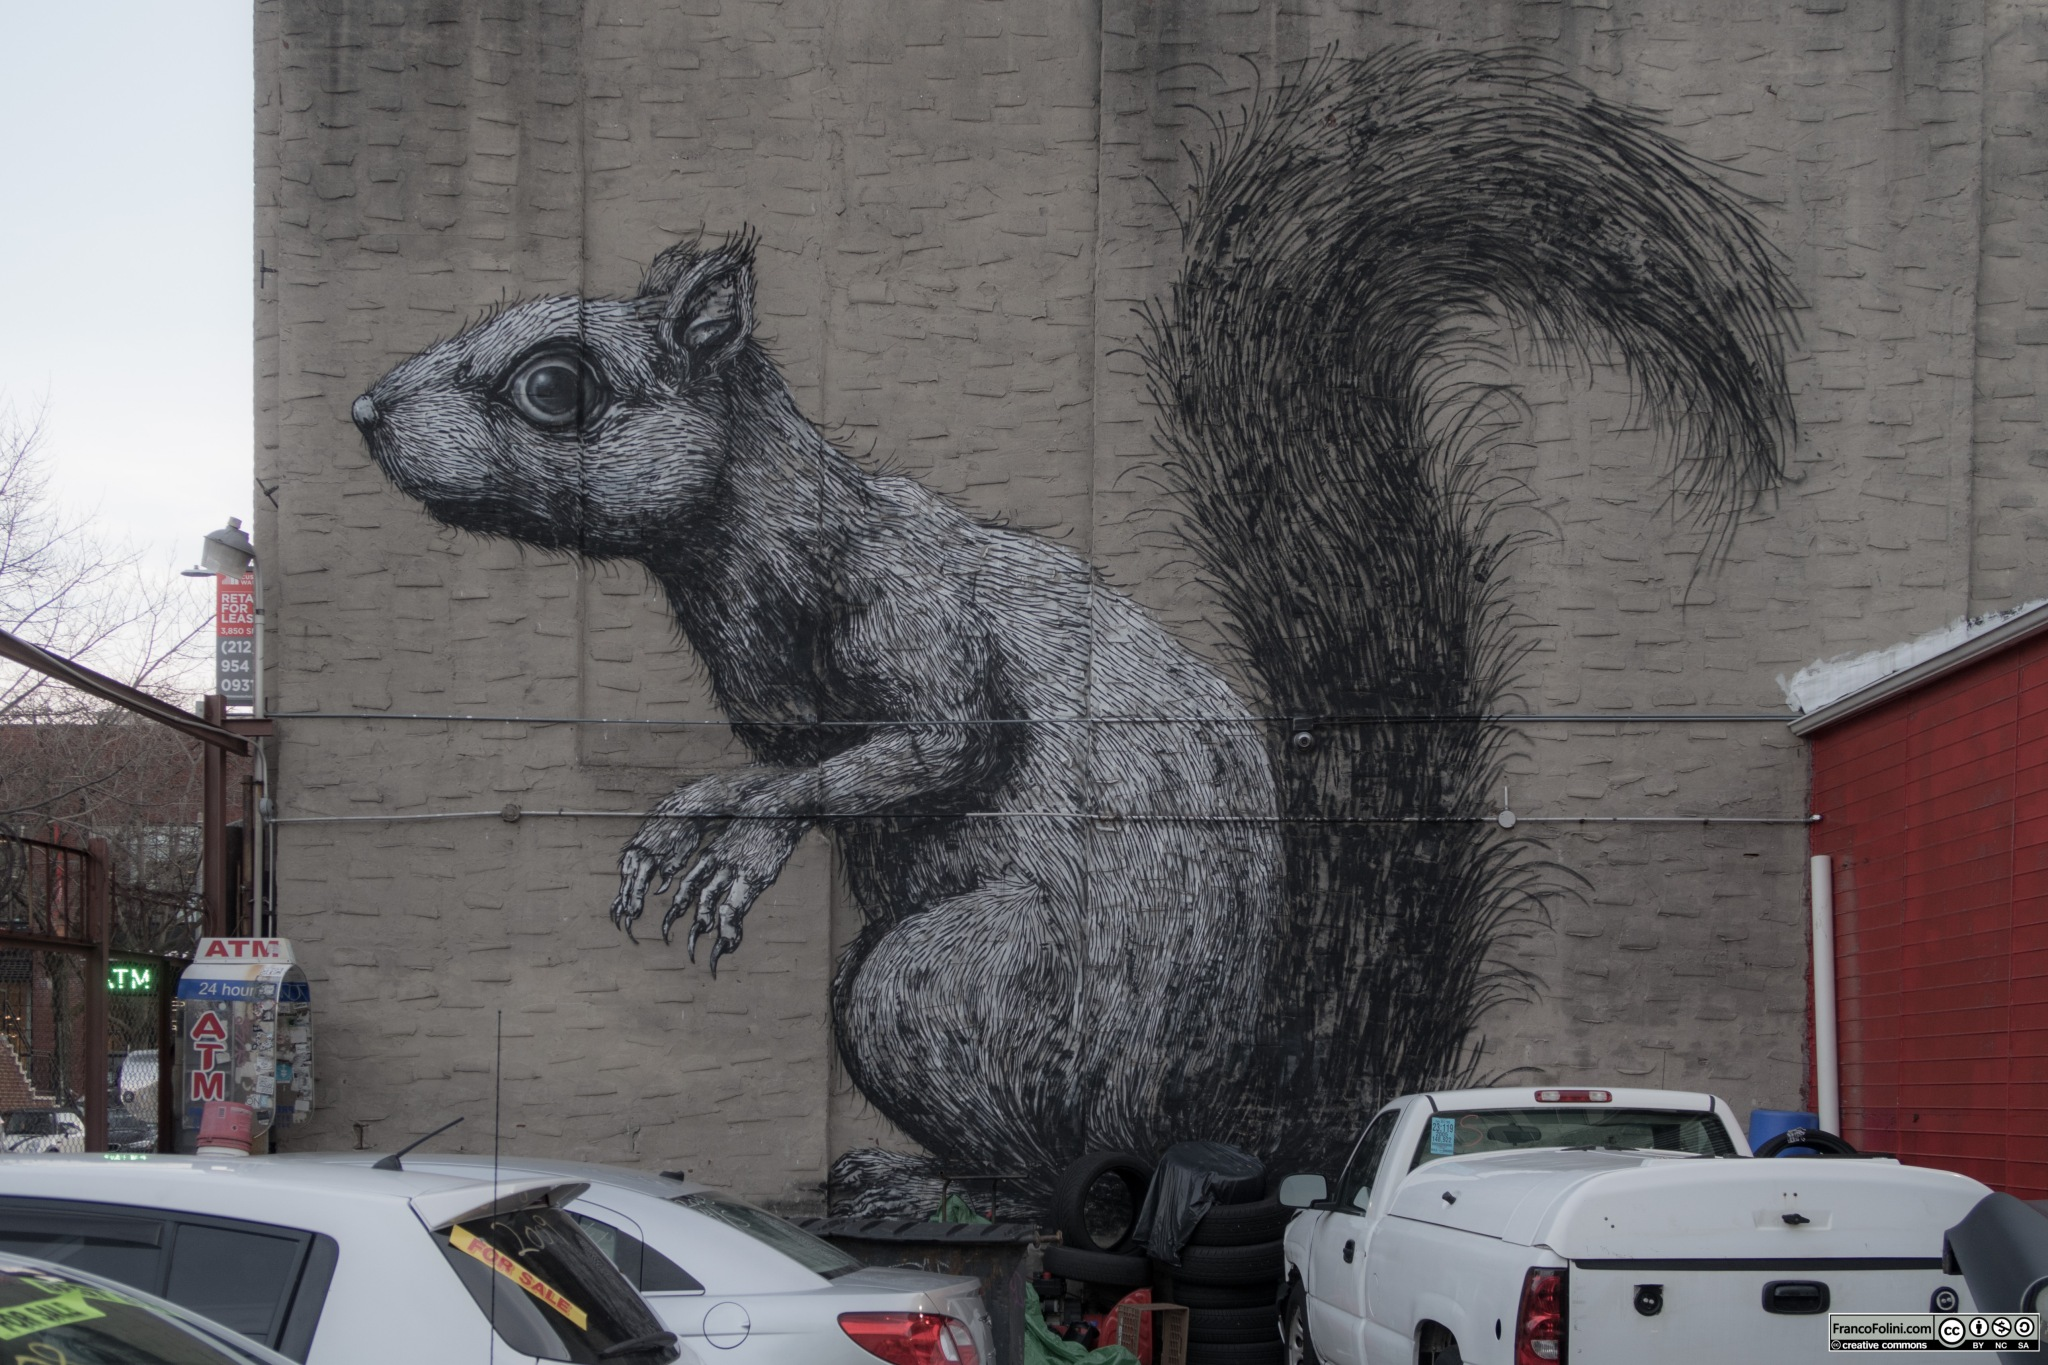 """Squirrel"" by ROA, 160 Berry Street Brooklyn, New York"